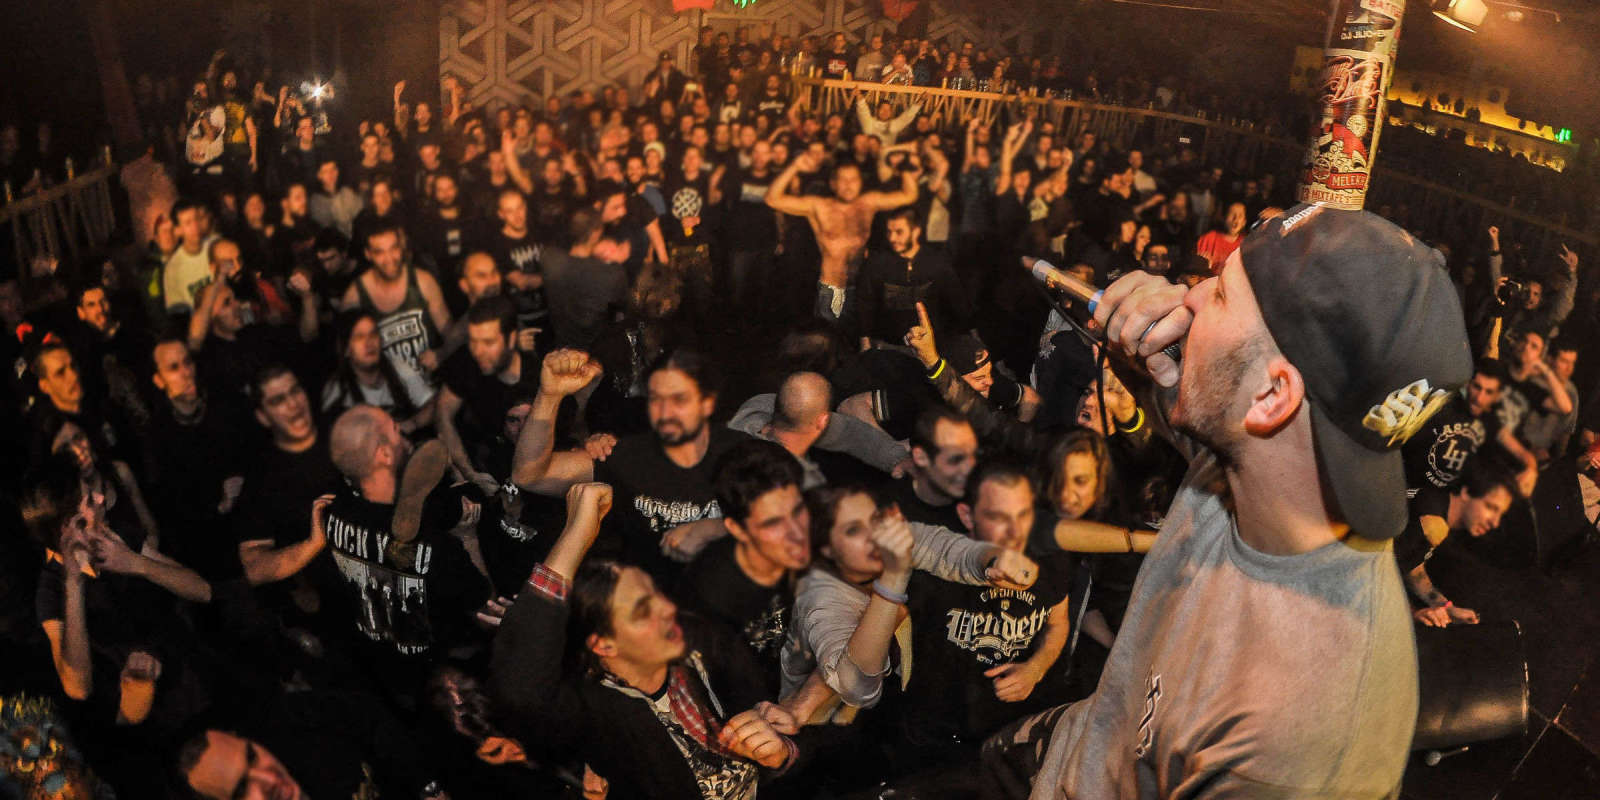 One of the biggest hardcore music festivals of the year. Supported by ME band Last Hope played together with another 10 bands from the Balkans and Germany.